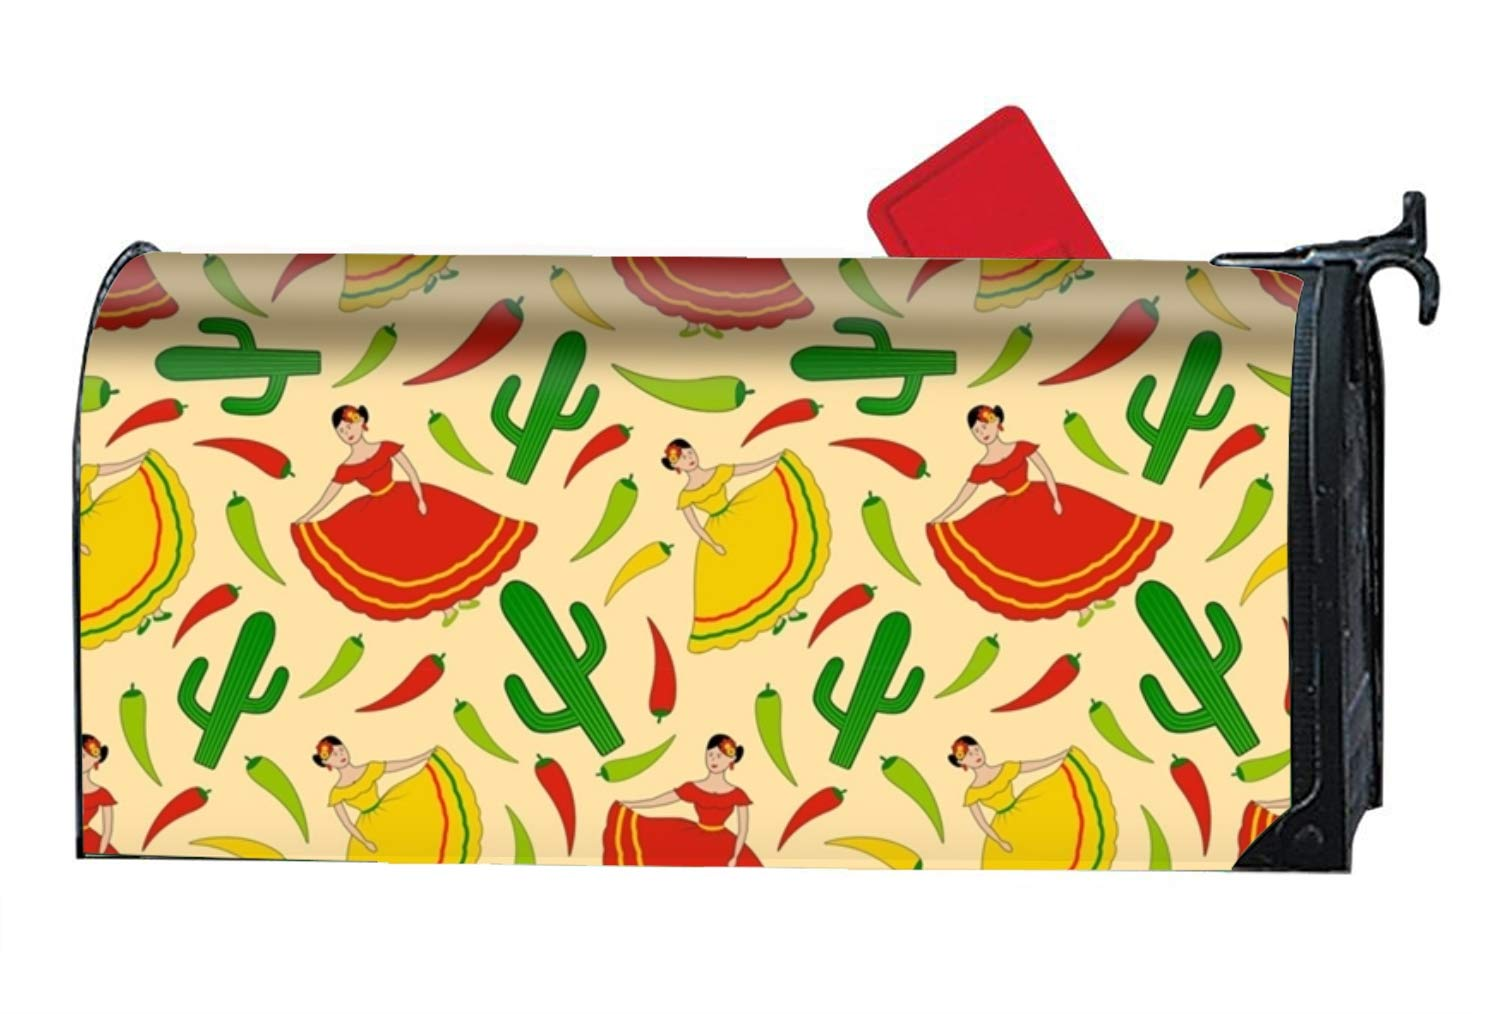 MAYS Mexican Women Pattern Custom Magnetic PVC Mailbox Cover - Mailbox Makeover